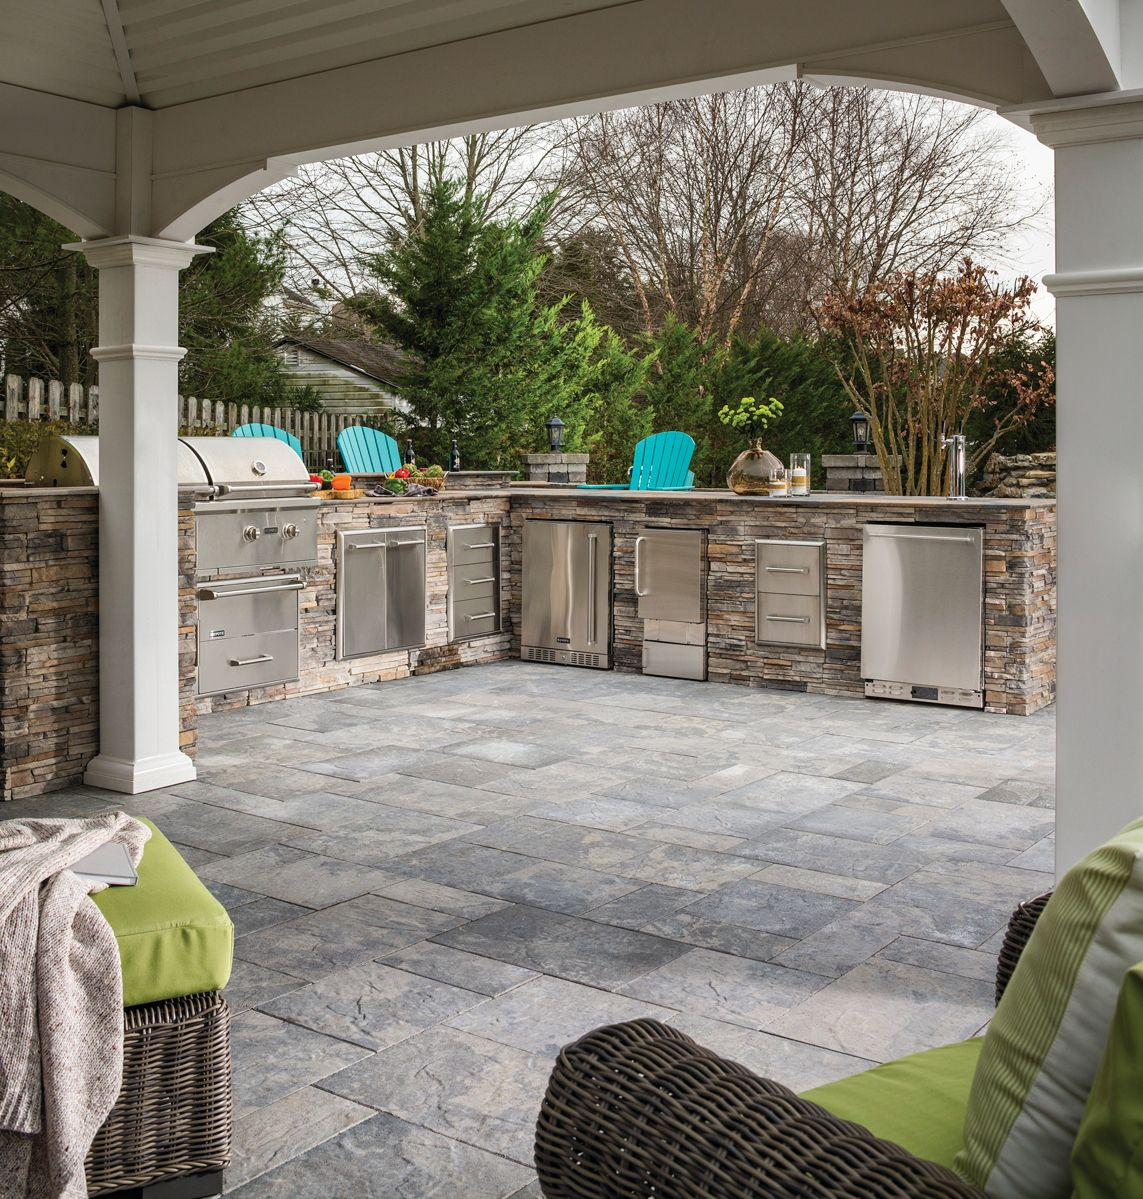 Find Out What S Cooking In The Latest Outdoor Kitchen Design Trends Outdoor Kitchen Design Outdoor Kitchen Outdoor Living Blog